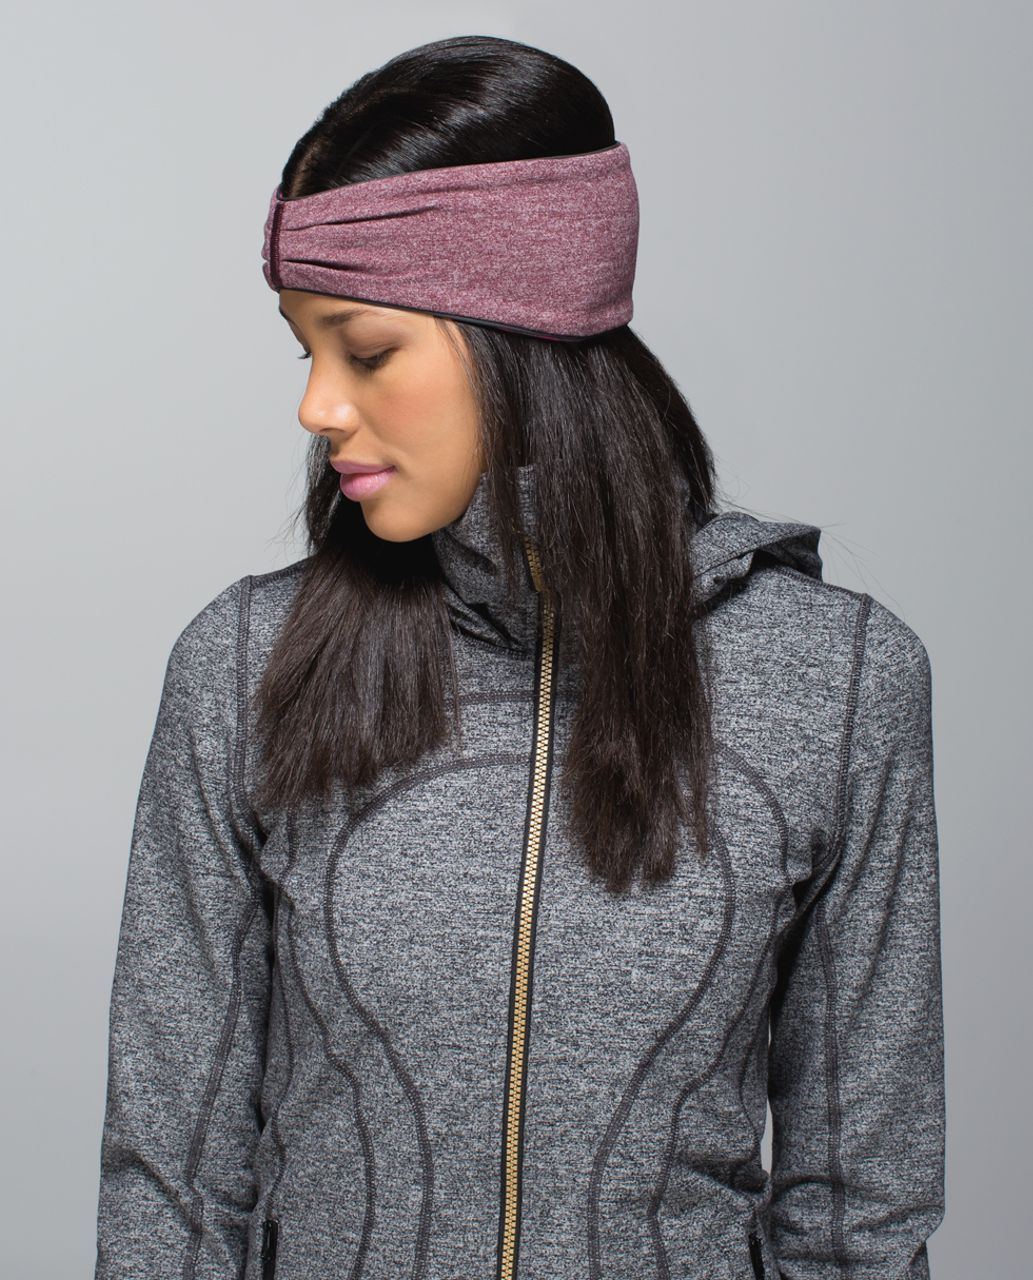 Lululemon Run With Me Ear Warmer - Hyper Stripe Heathered Bordeaux Drama Bumble Berry / Heathered Bordeaux Drama